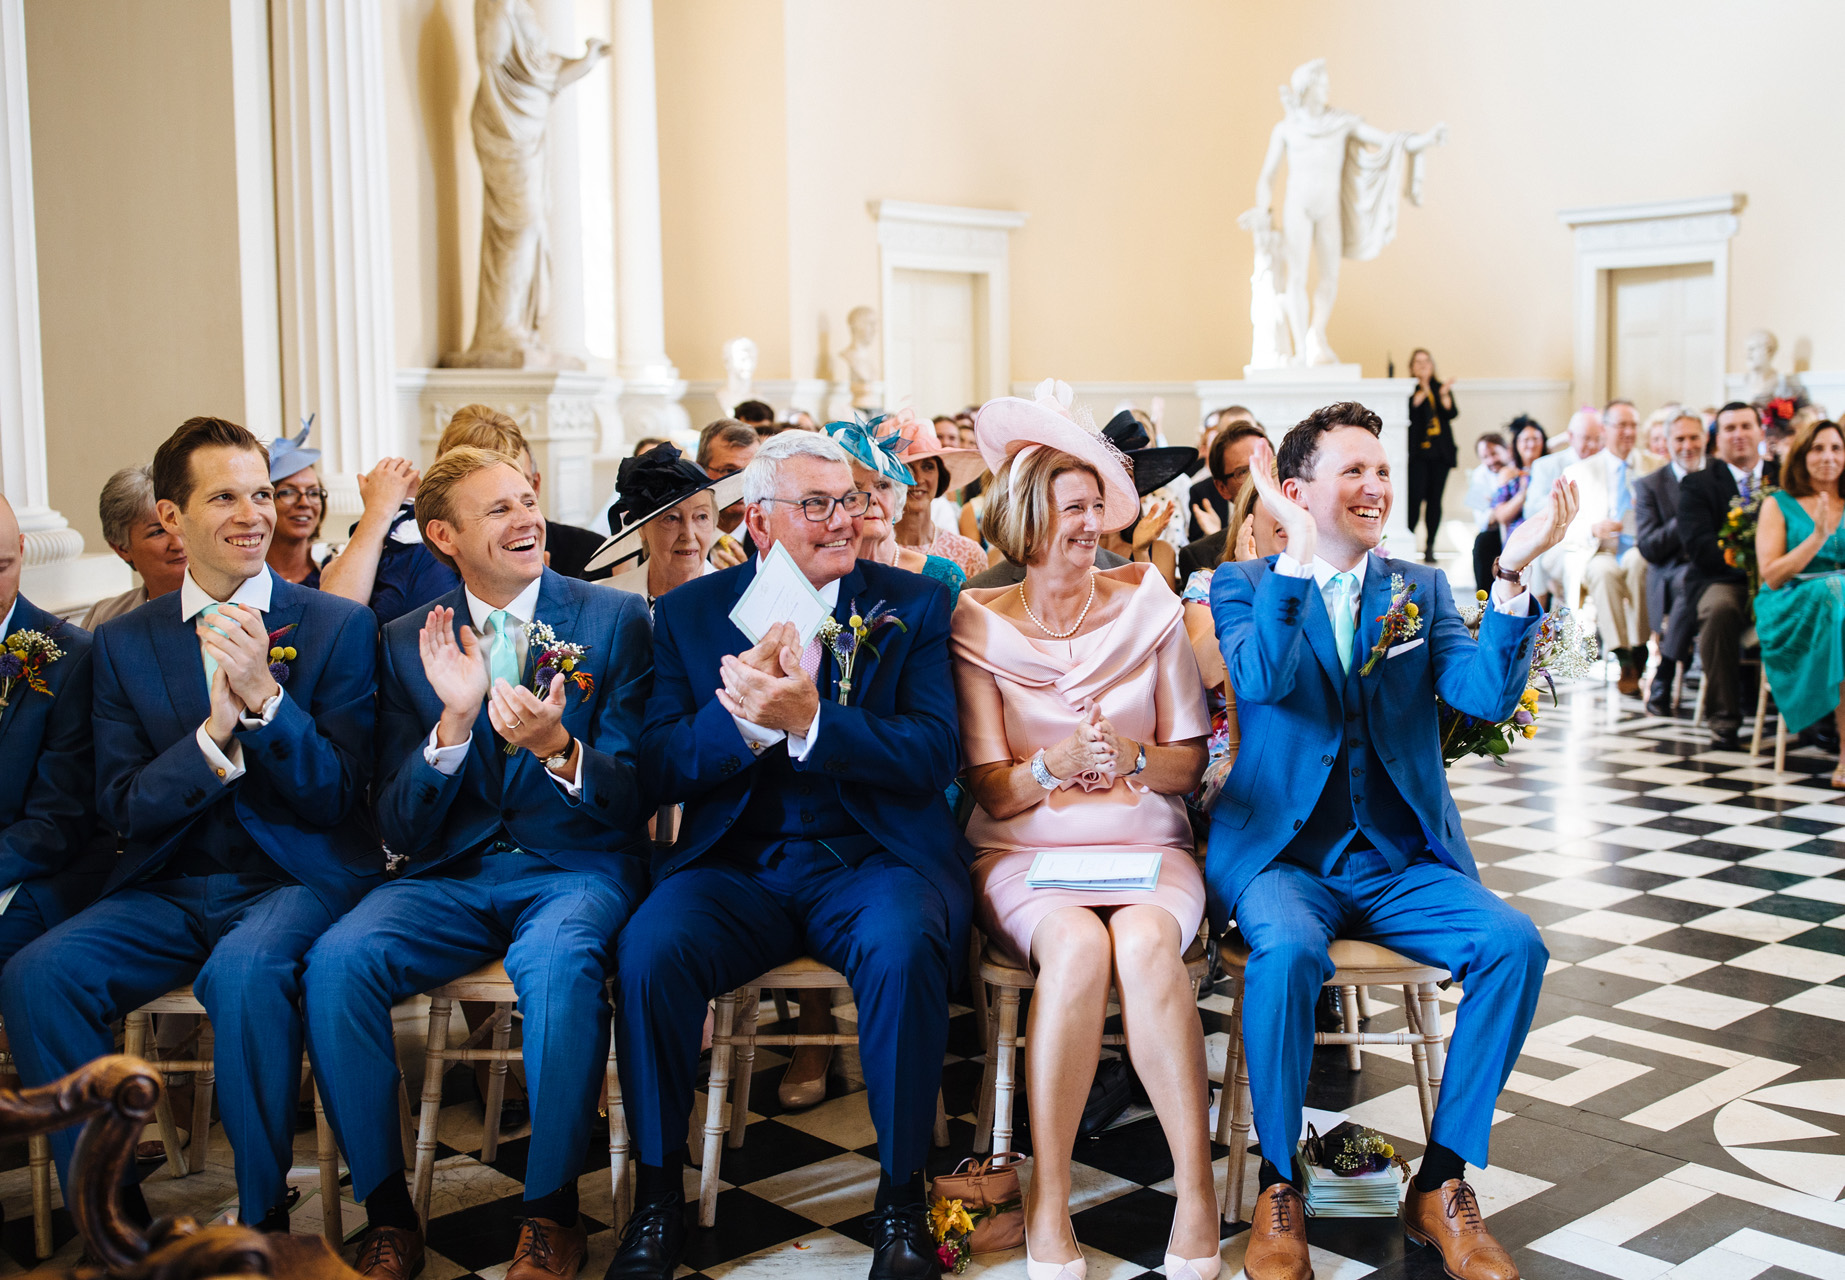 family and friends applauding the new husband and wife bride and groom saying vows in wedding ceremony in the great hall at syon park